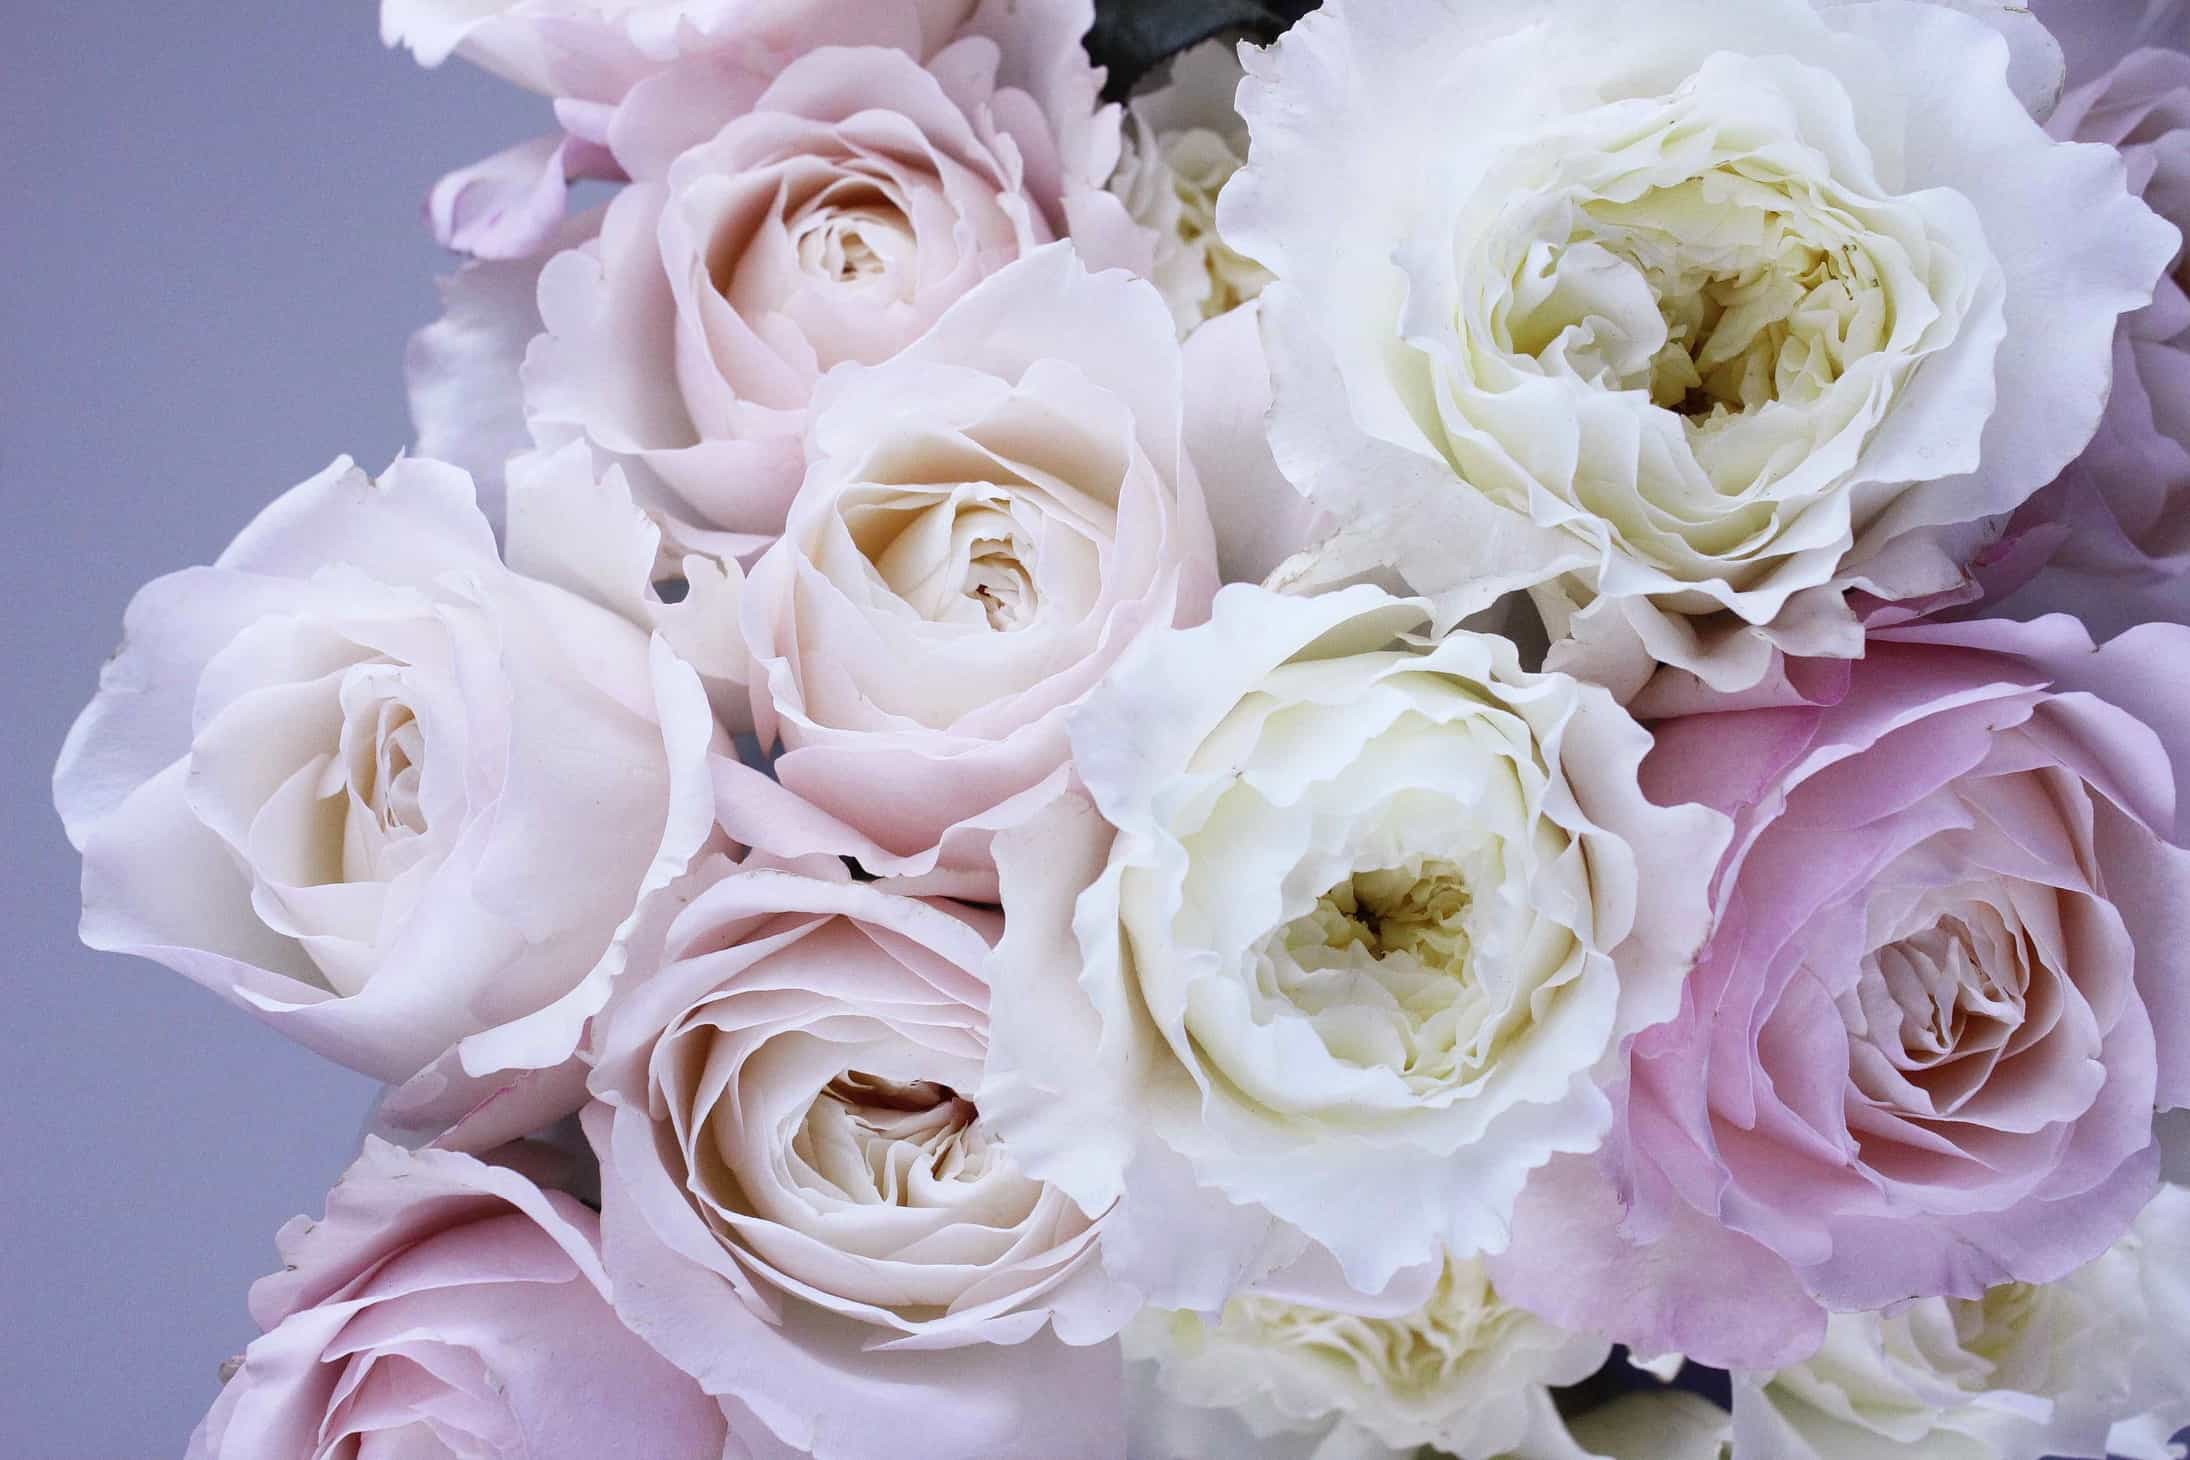 cut garden roses, david austin roses, english roses, why garden roses so expensive